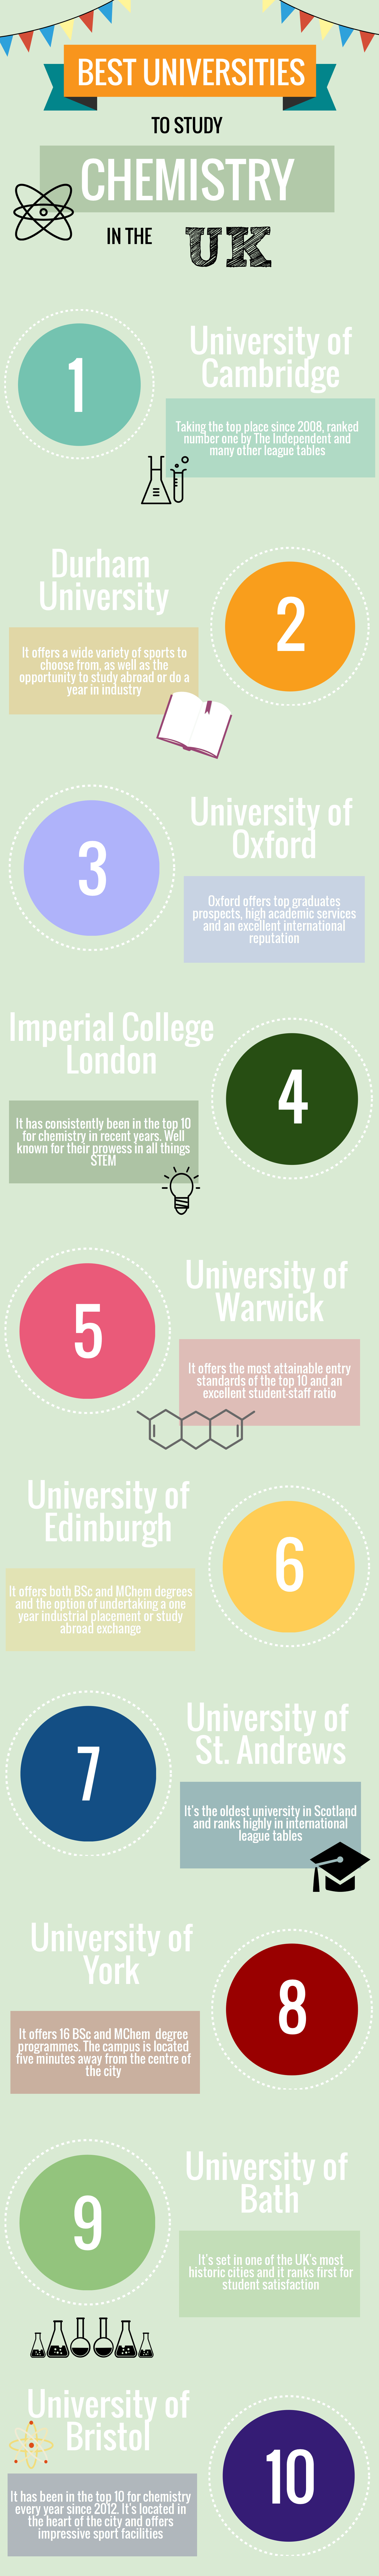 The Best Universities To Study Chemistry In The UK